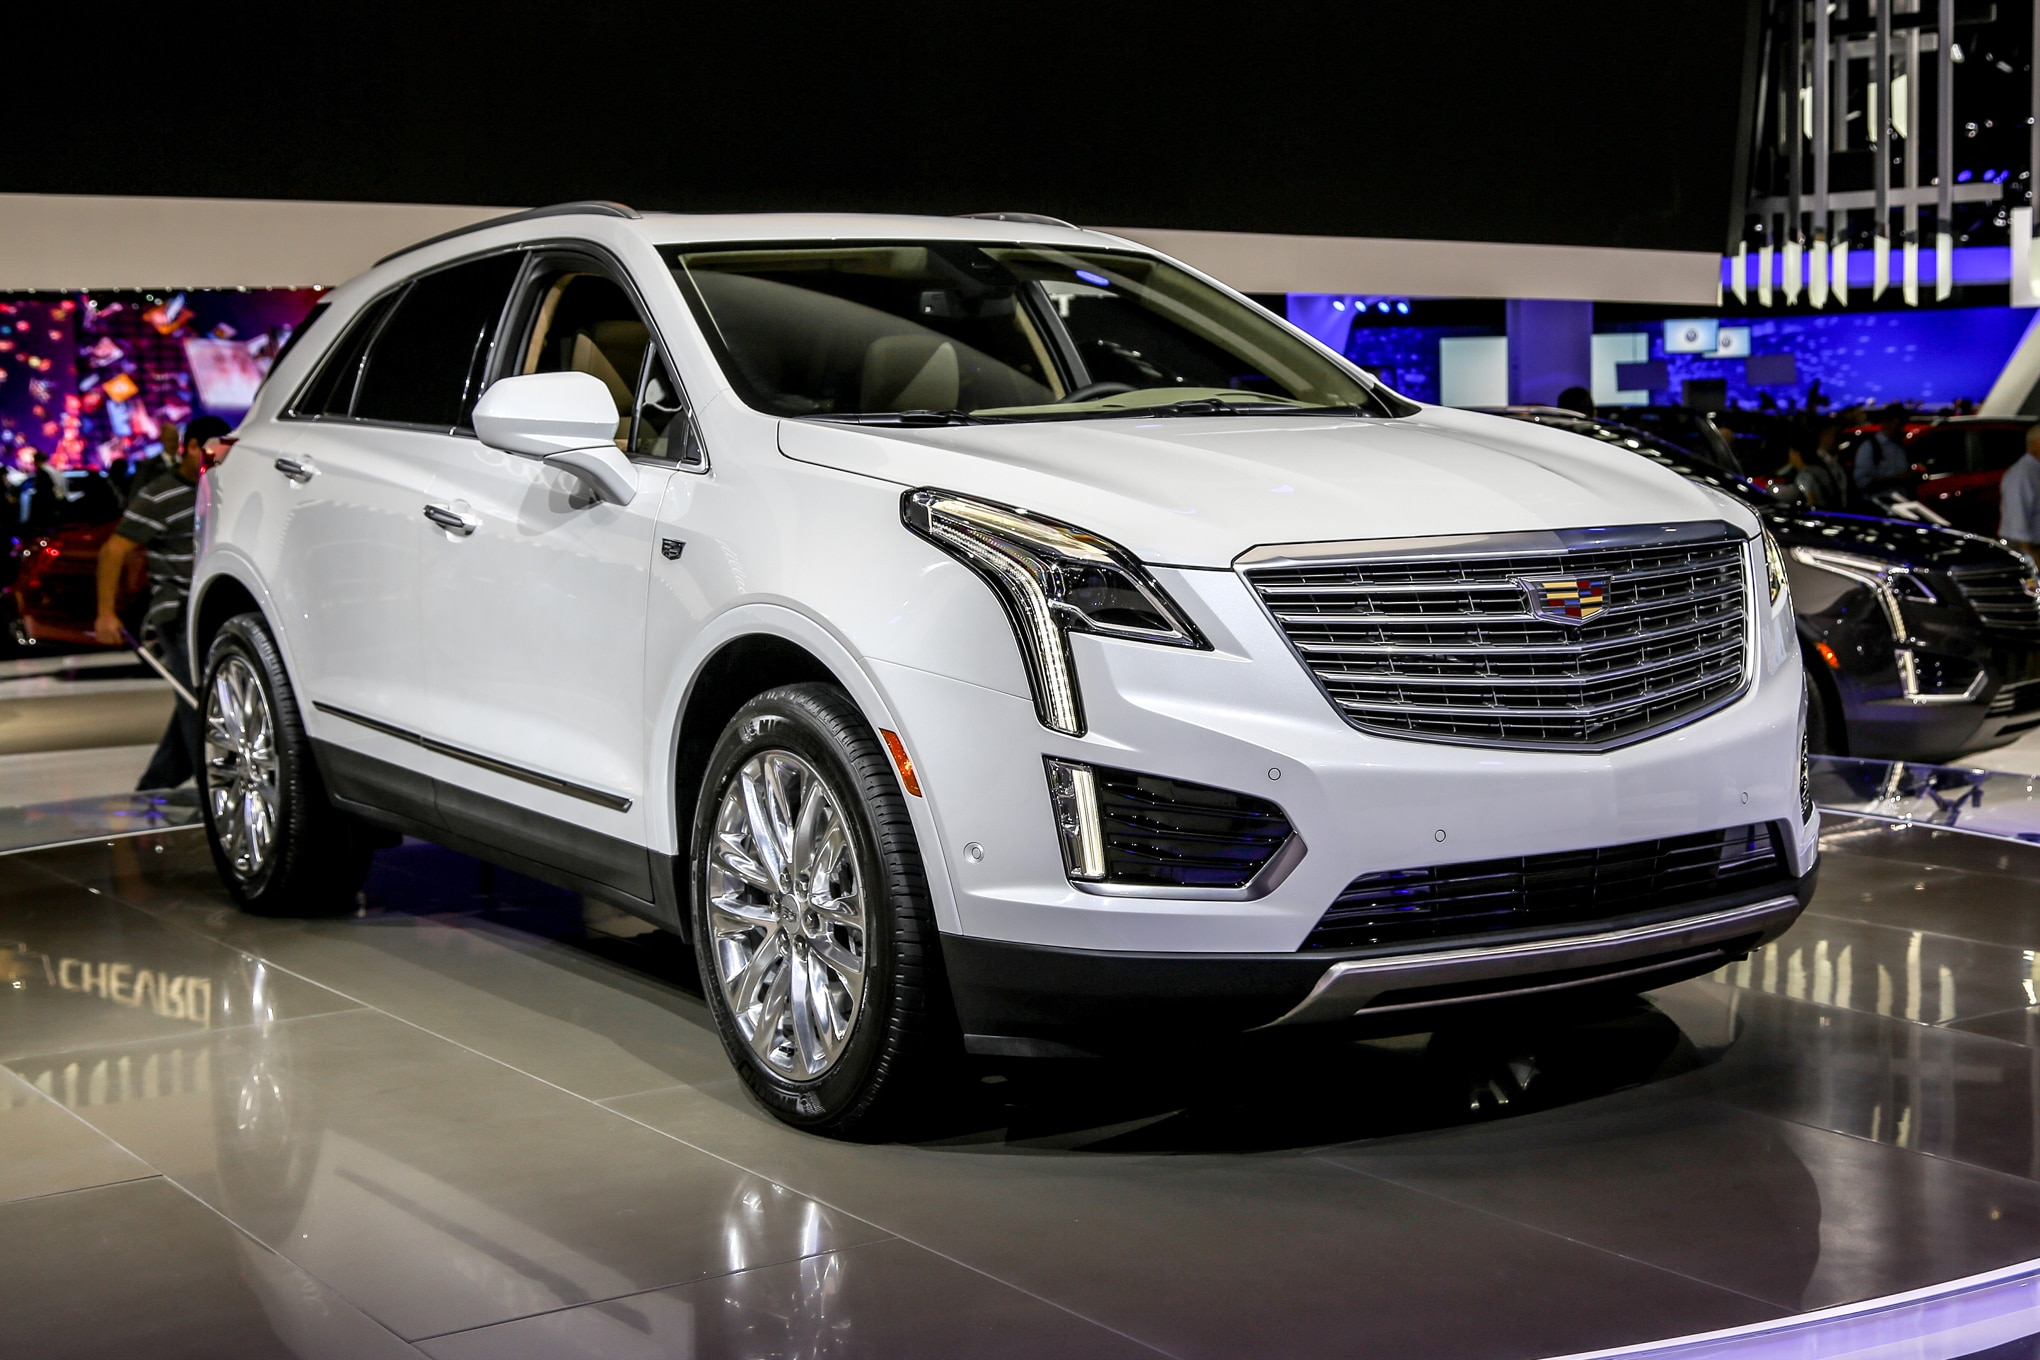 2017 cadillac xt5 starts at 39 990. Black Bedroom Furniture Sets. Home Design Ideas